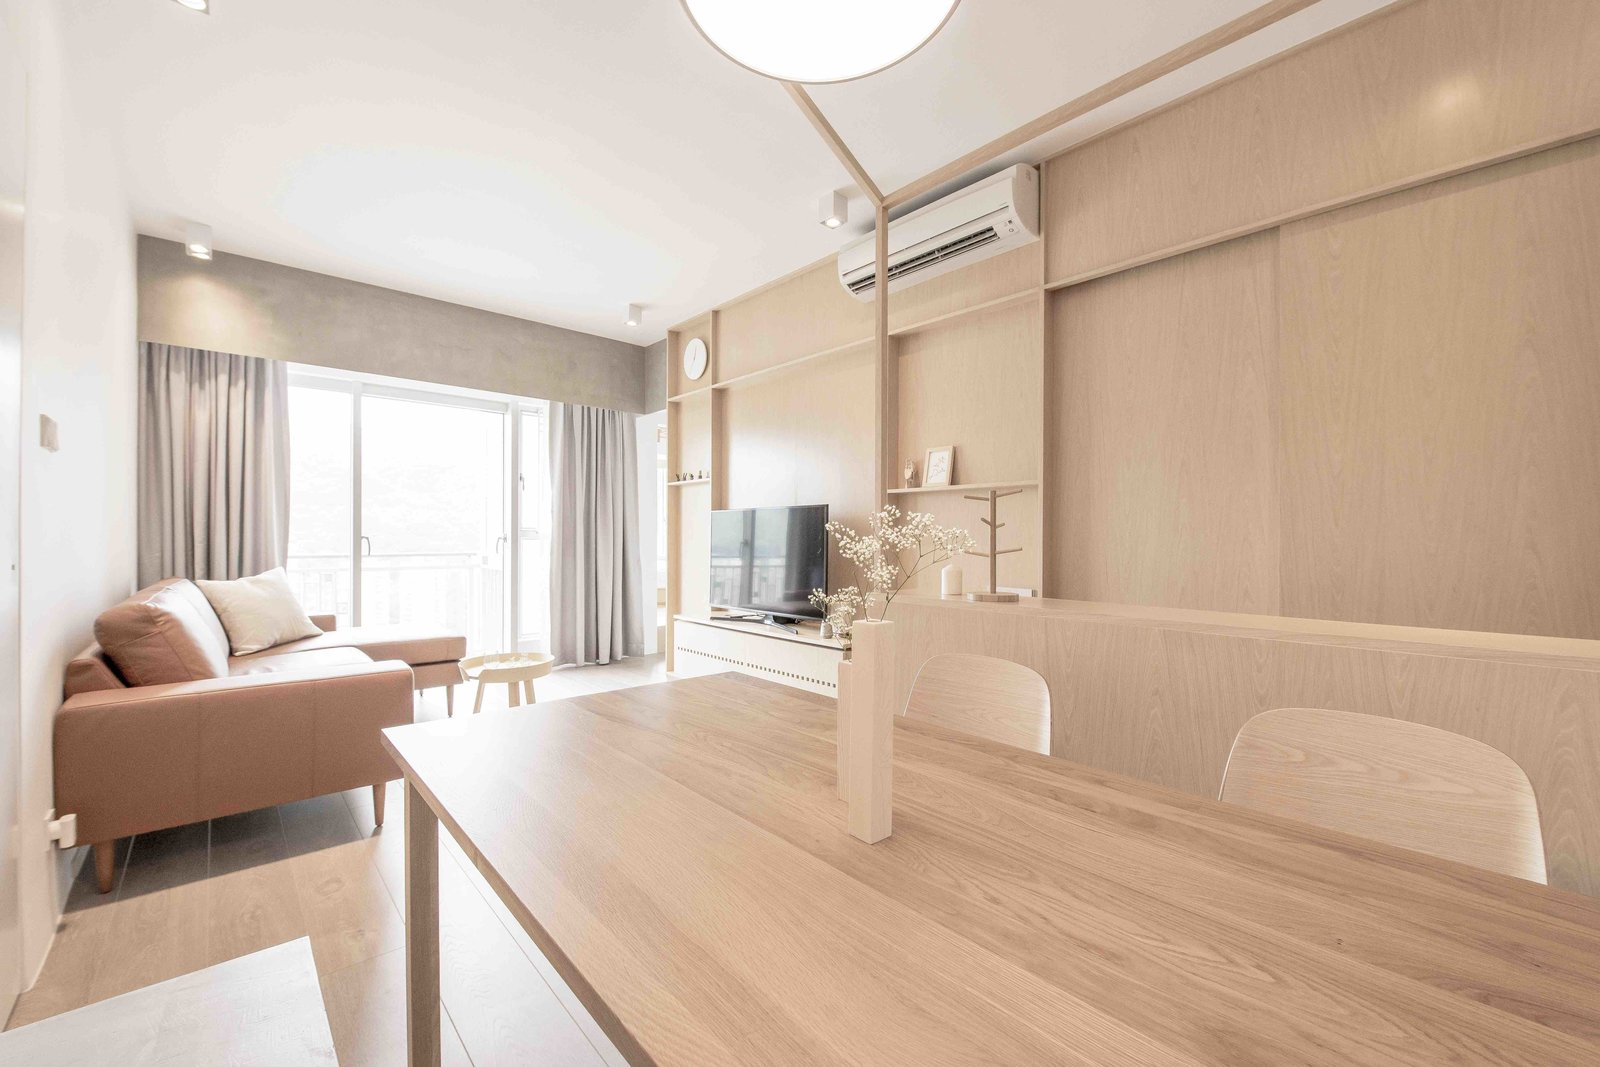 Living Room, Sofa, Chair, Sectional, Table, Ceiling Lighting, Light Hardwood Floor, and Coffee Tables  Photo 3 of 15 in An Origami-Inspired Apartment in Hong Kong With Tons of Smart Storage